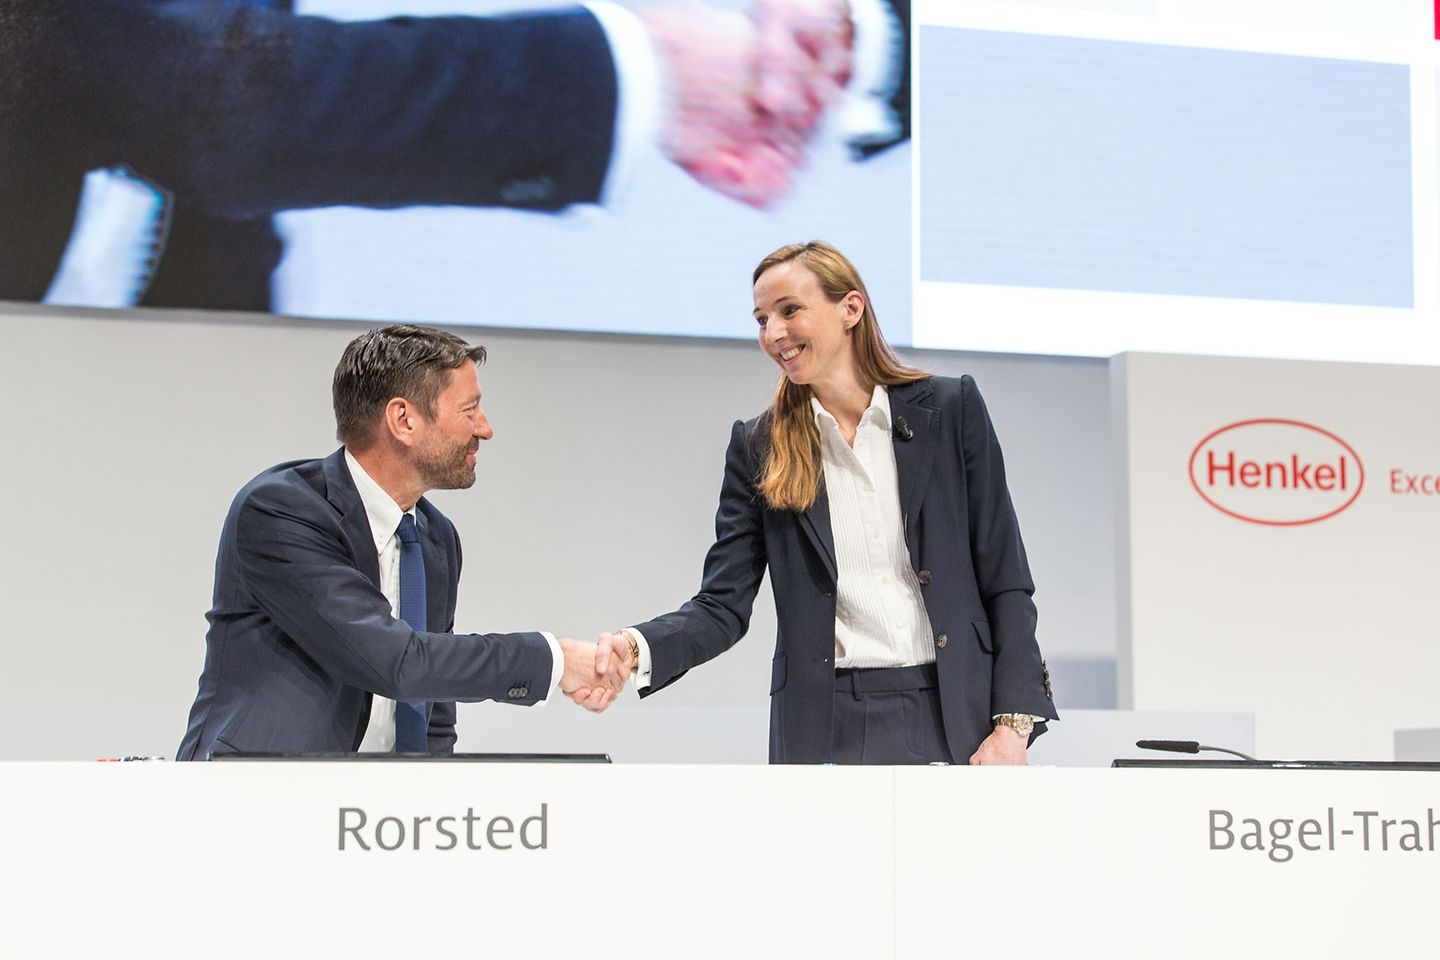 Handshake between Kasper Rorsted and Simone Bagel-Trah at AGM2016